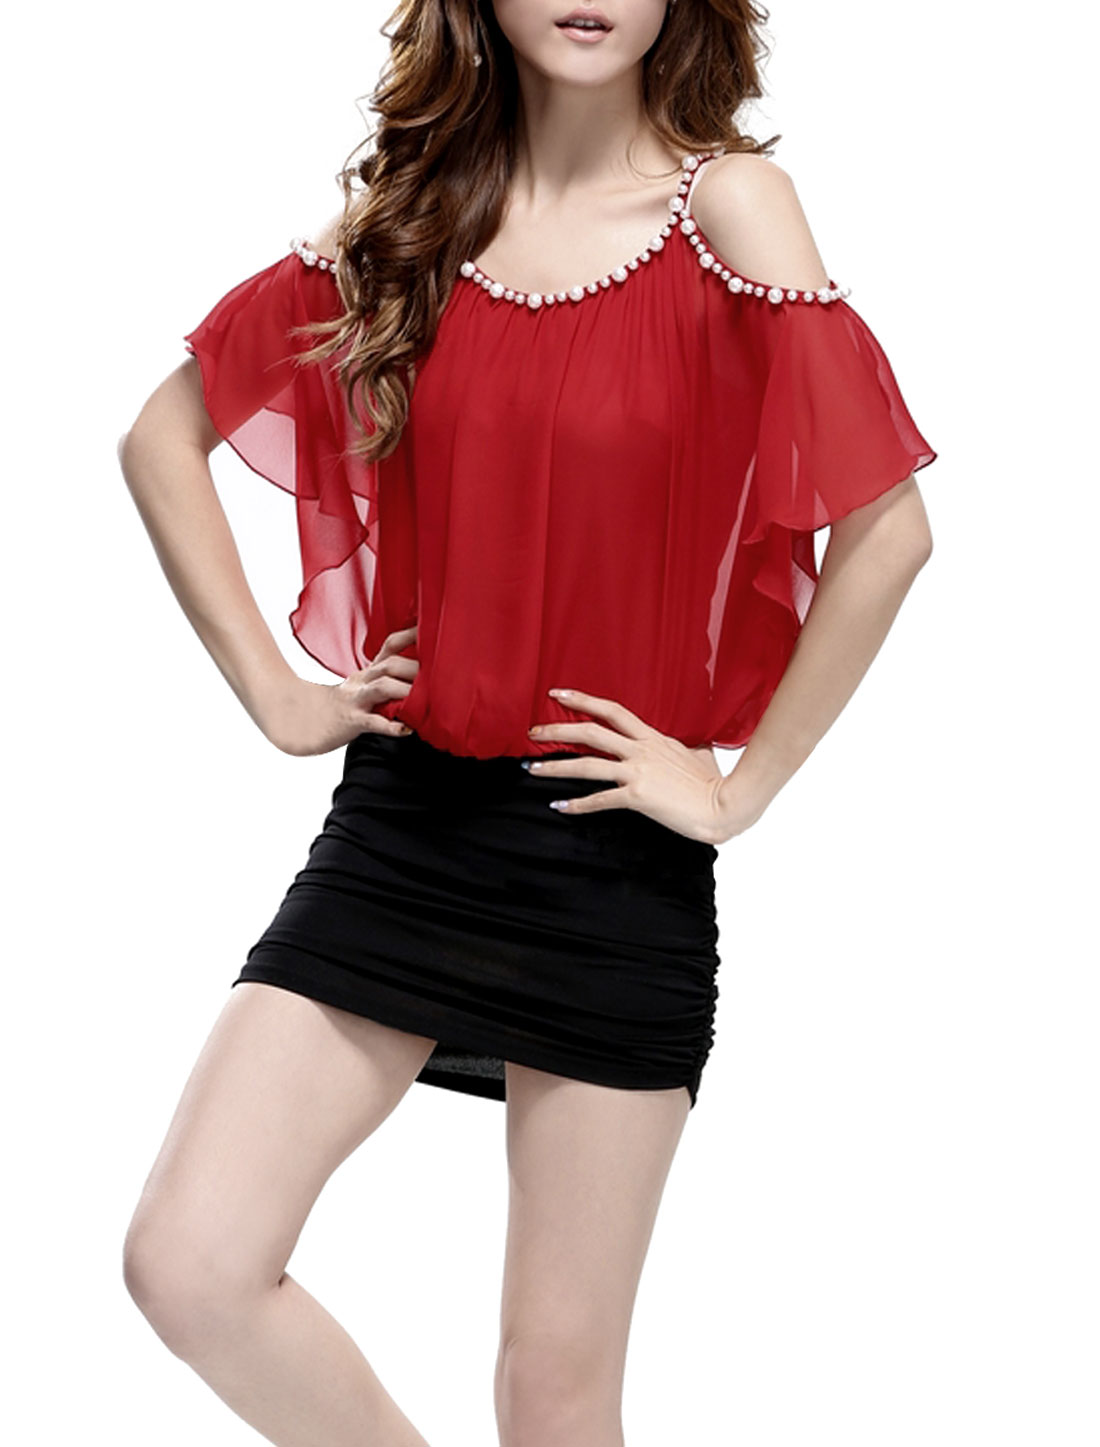 Women Spaghetti Strap Cut Out Casual Dress Red Black XS